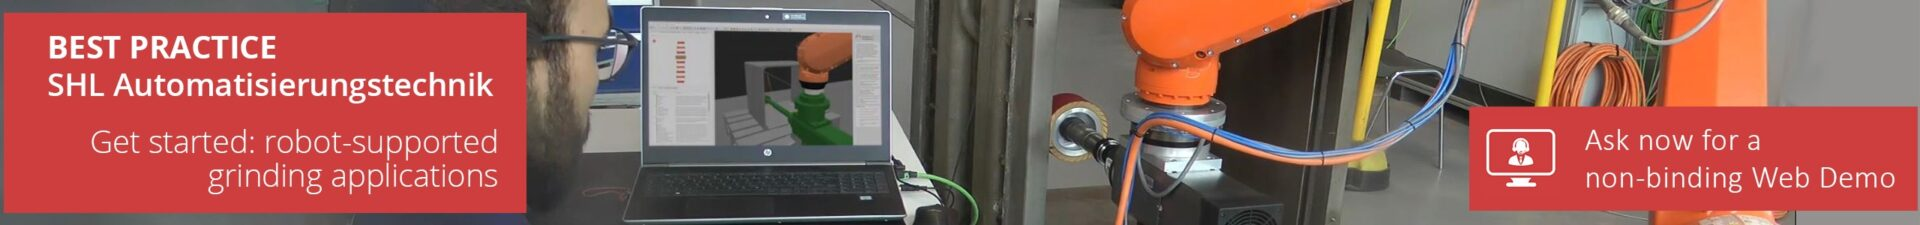 Automate robot-supported grinding applications using ArtiMinds Robotics